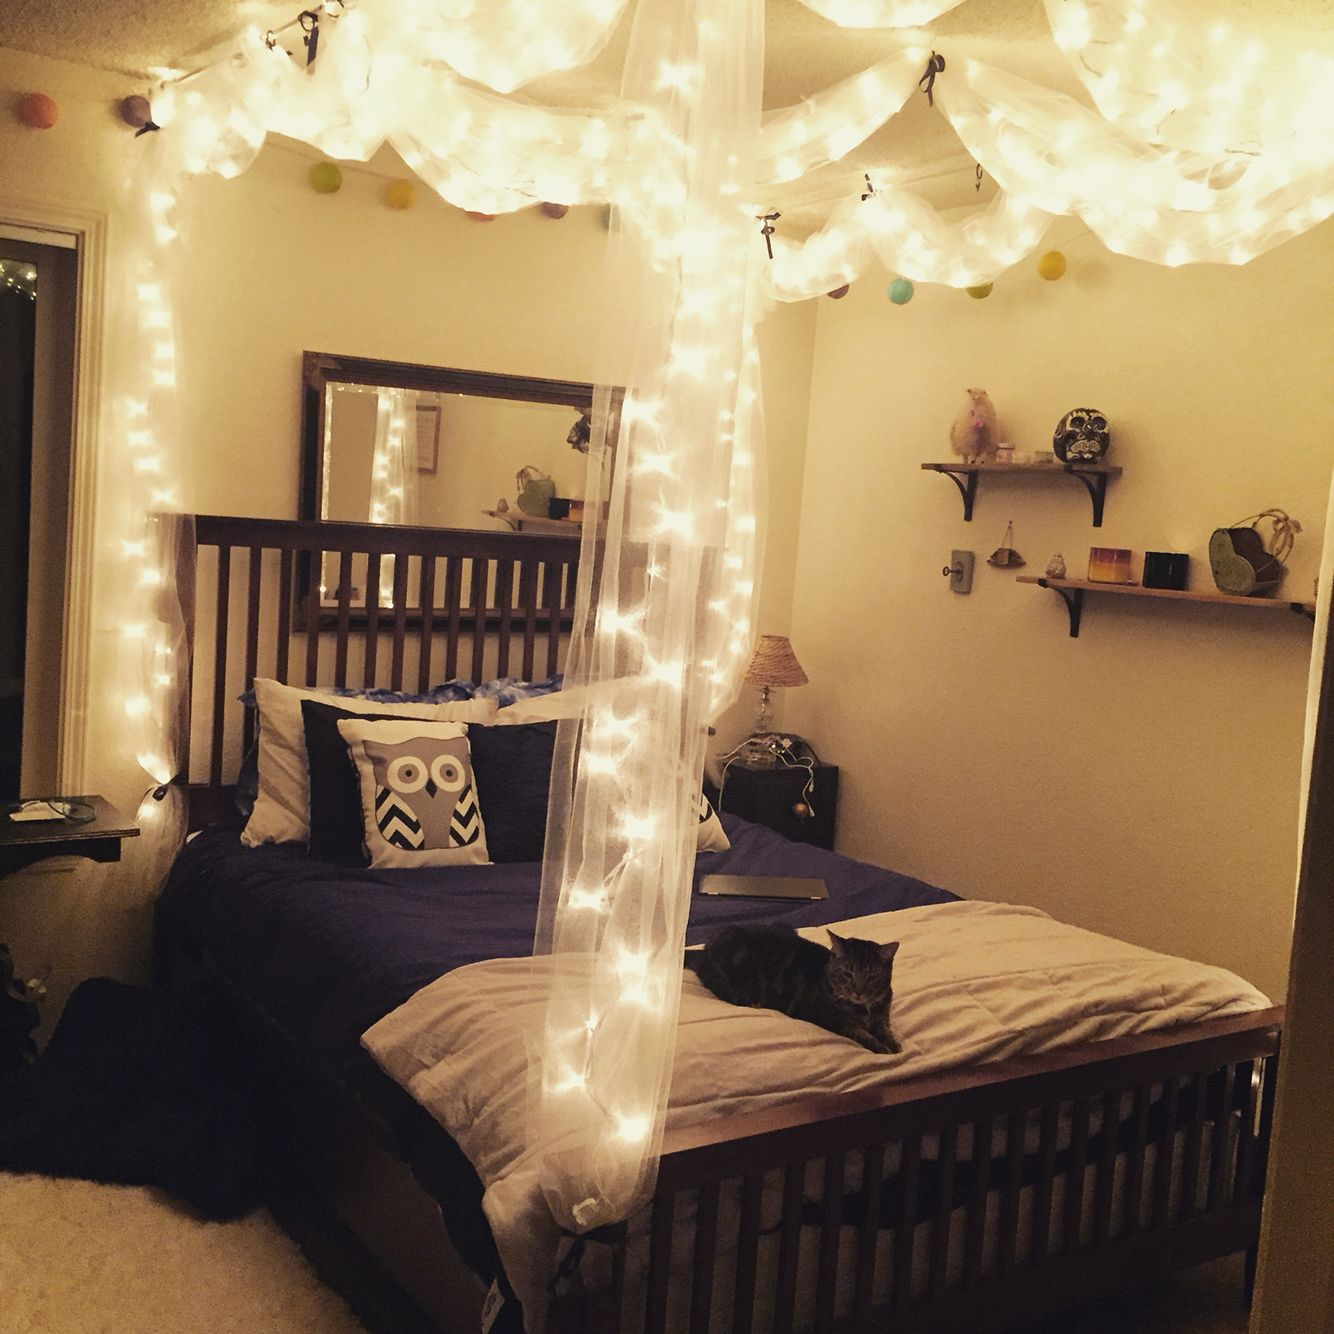 Best Diy Bed Canopy With Lights With Images Bed Canopy With 640 x 480